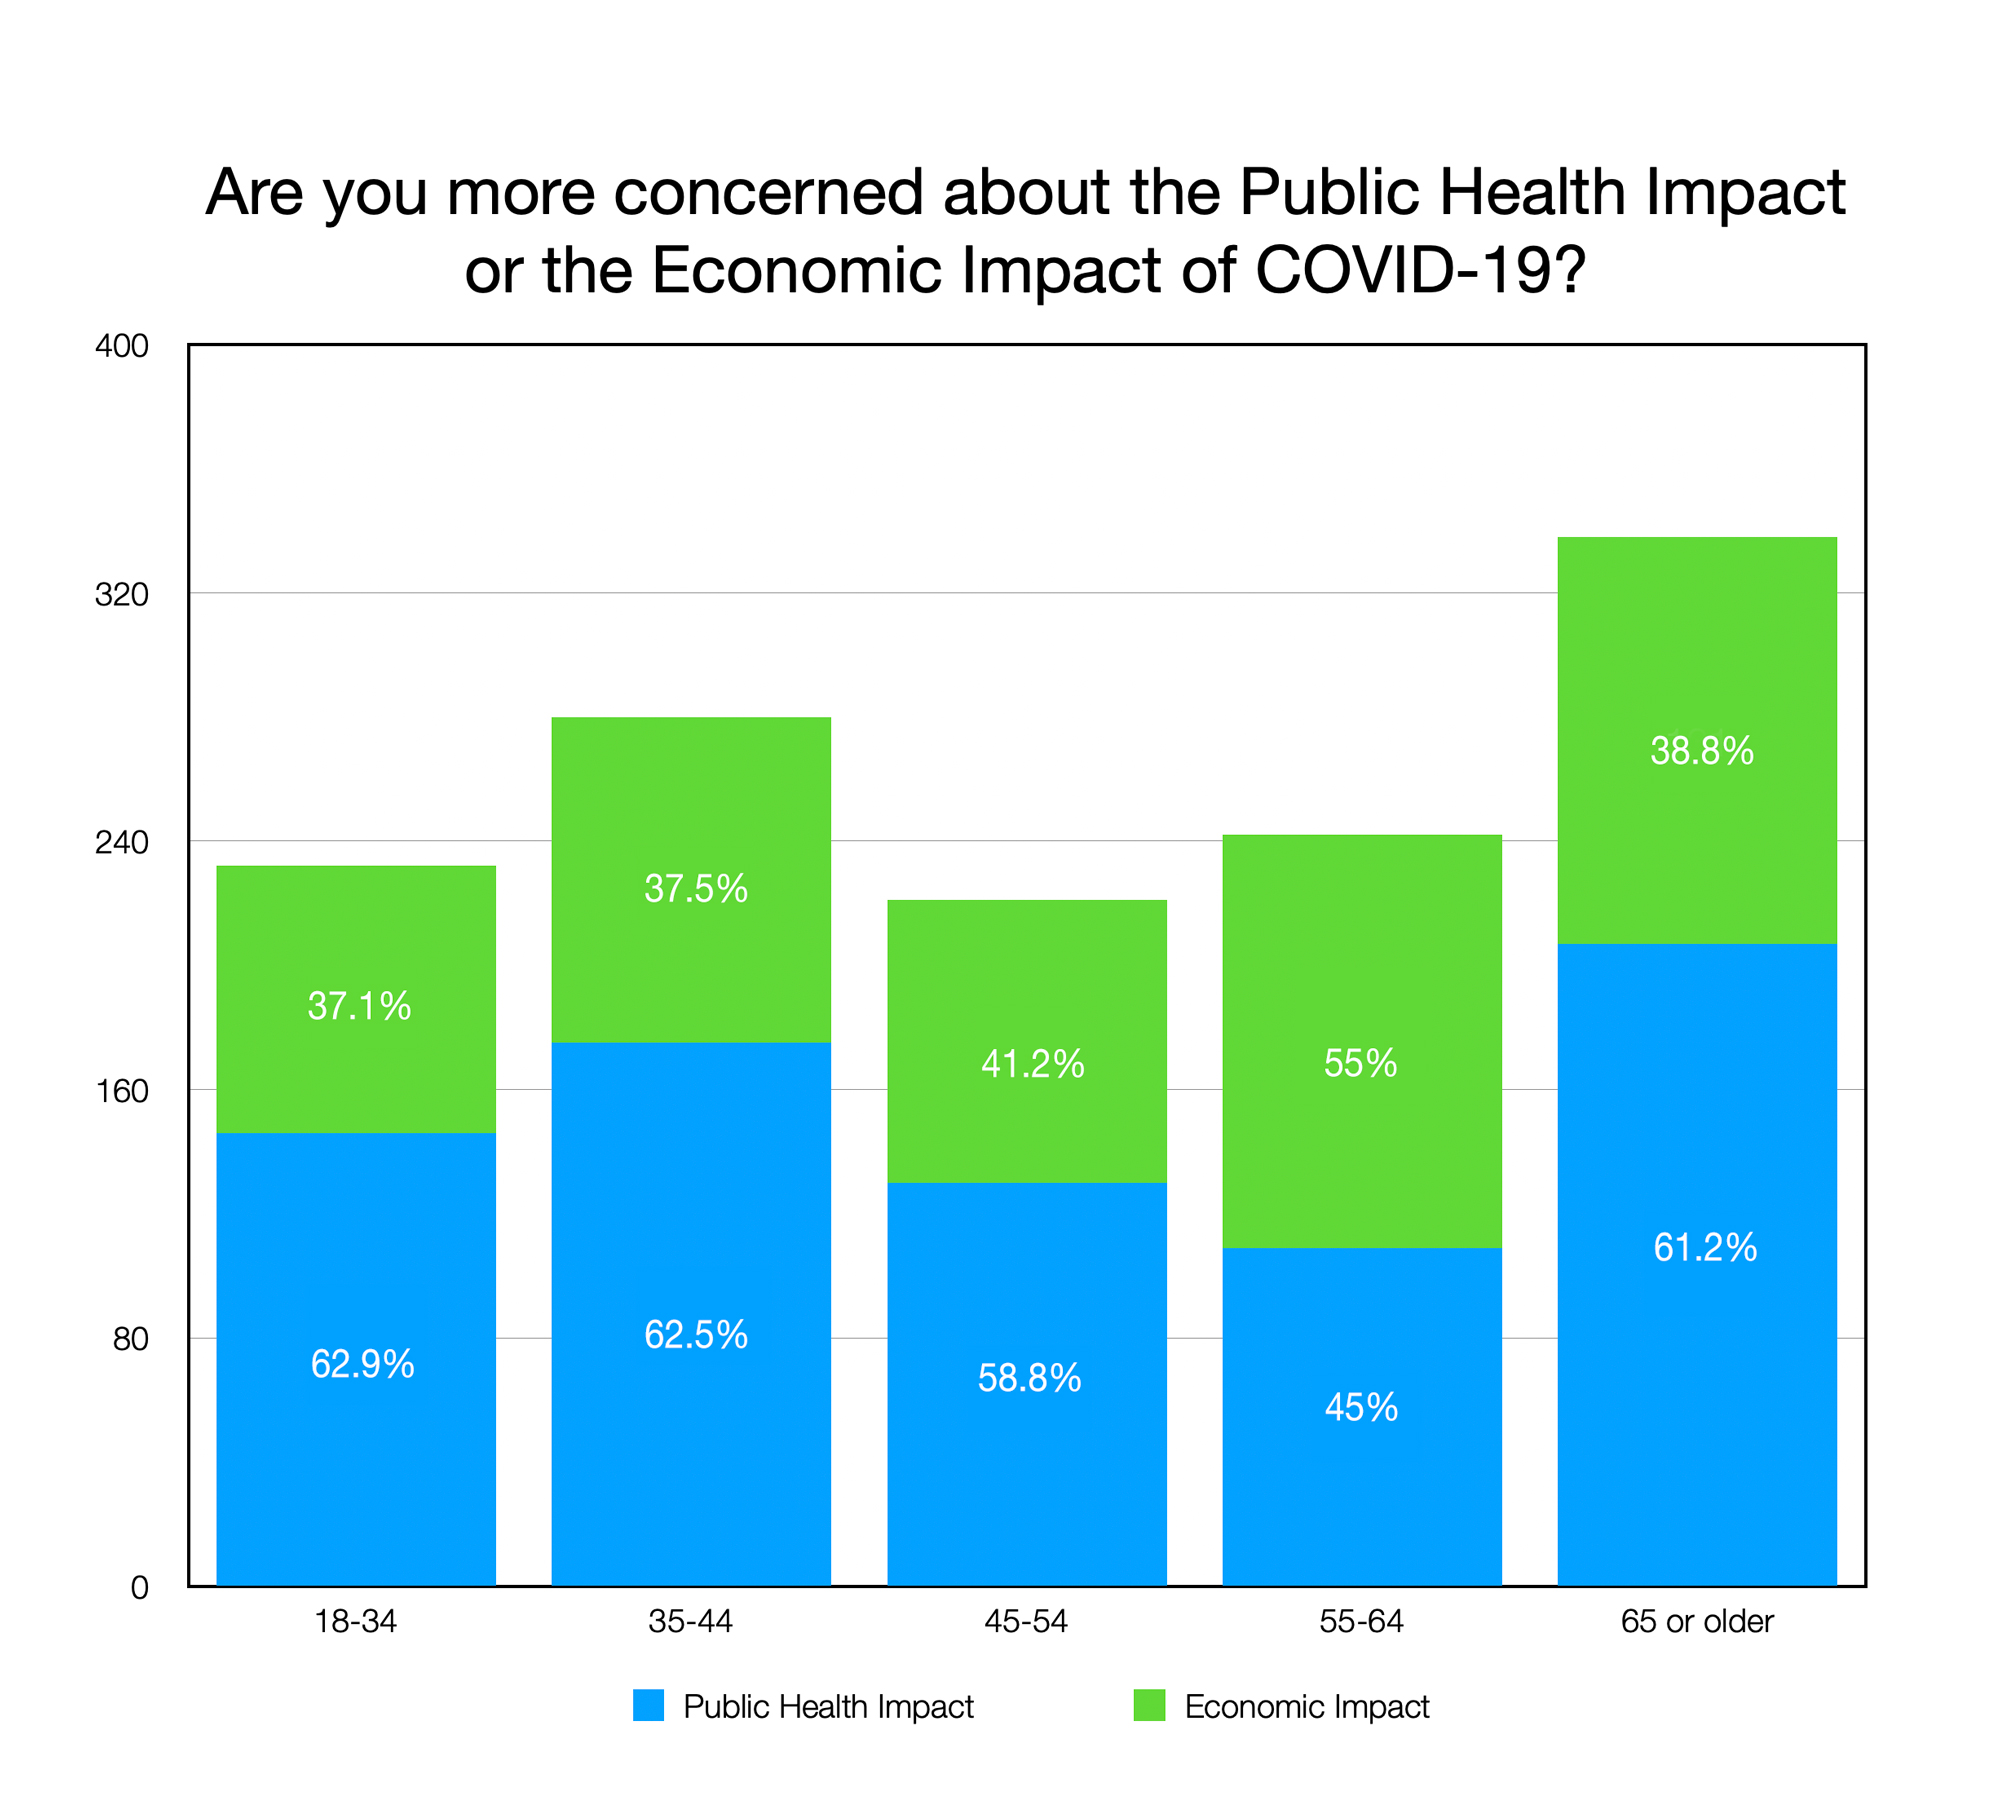 GRAPH: are you more concerned about the Public Health Impact